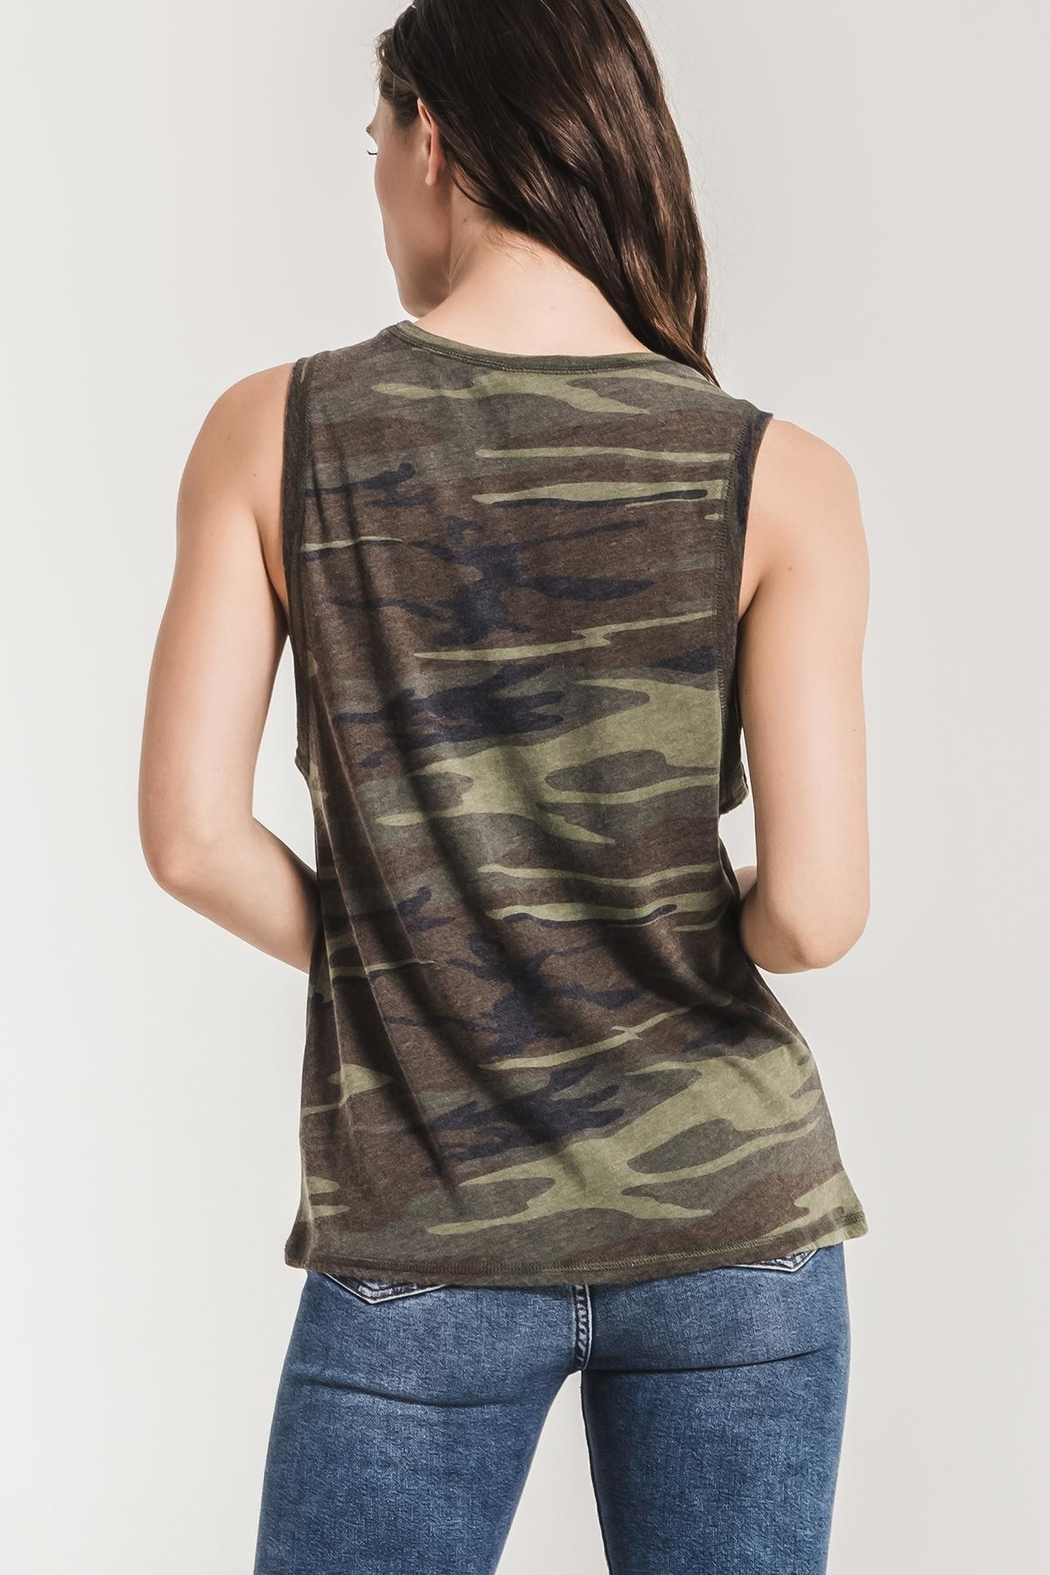 z supply Camo Muscle Tank - Side Cropped Image